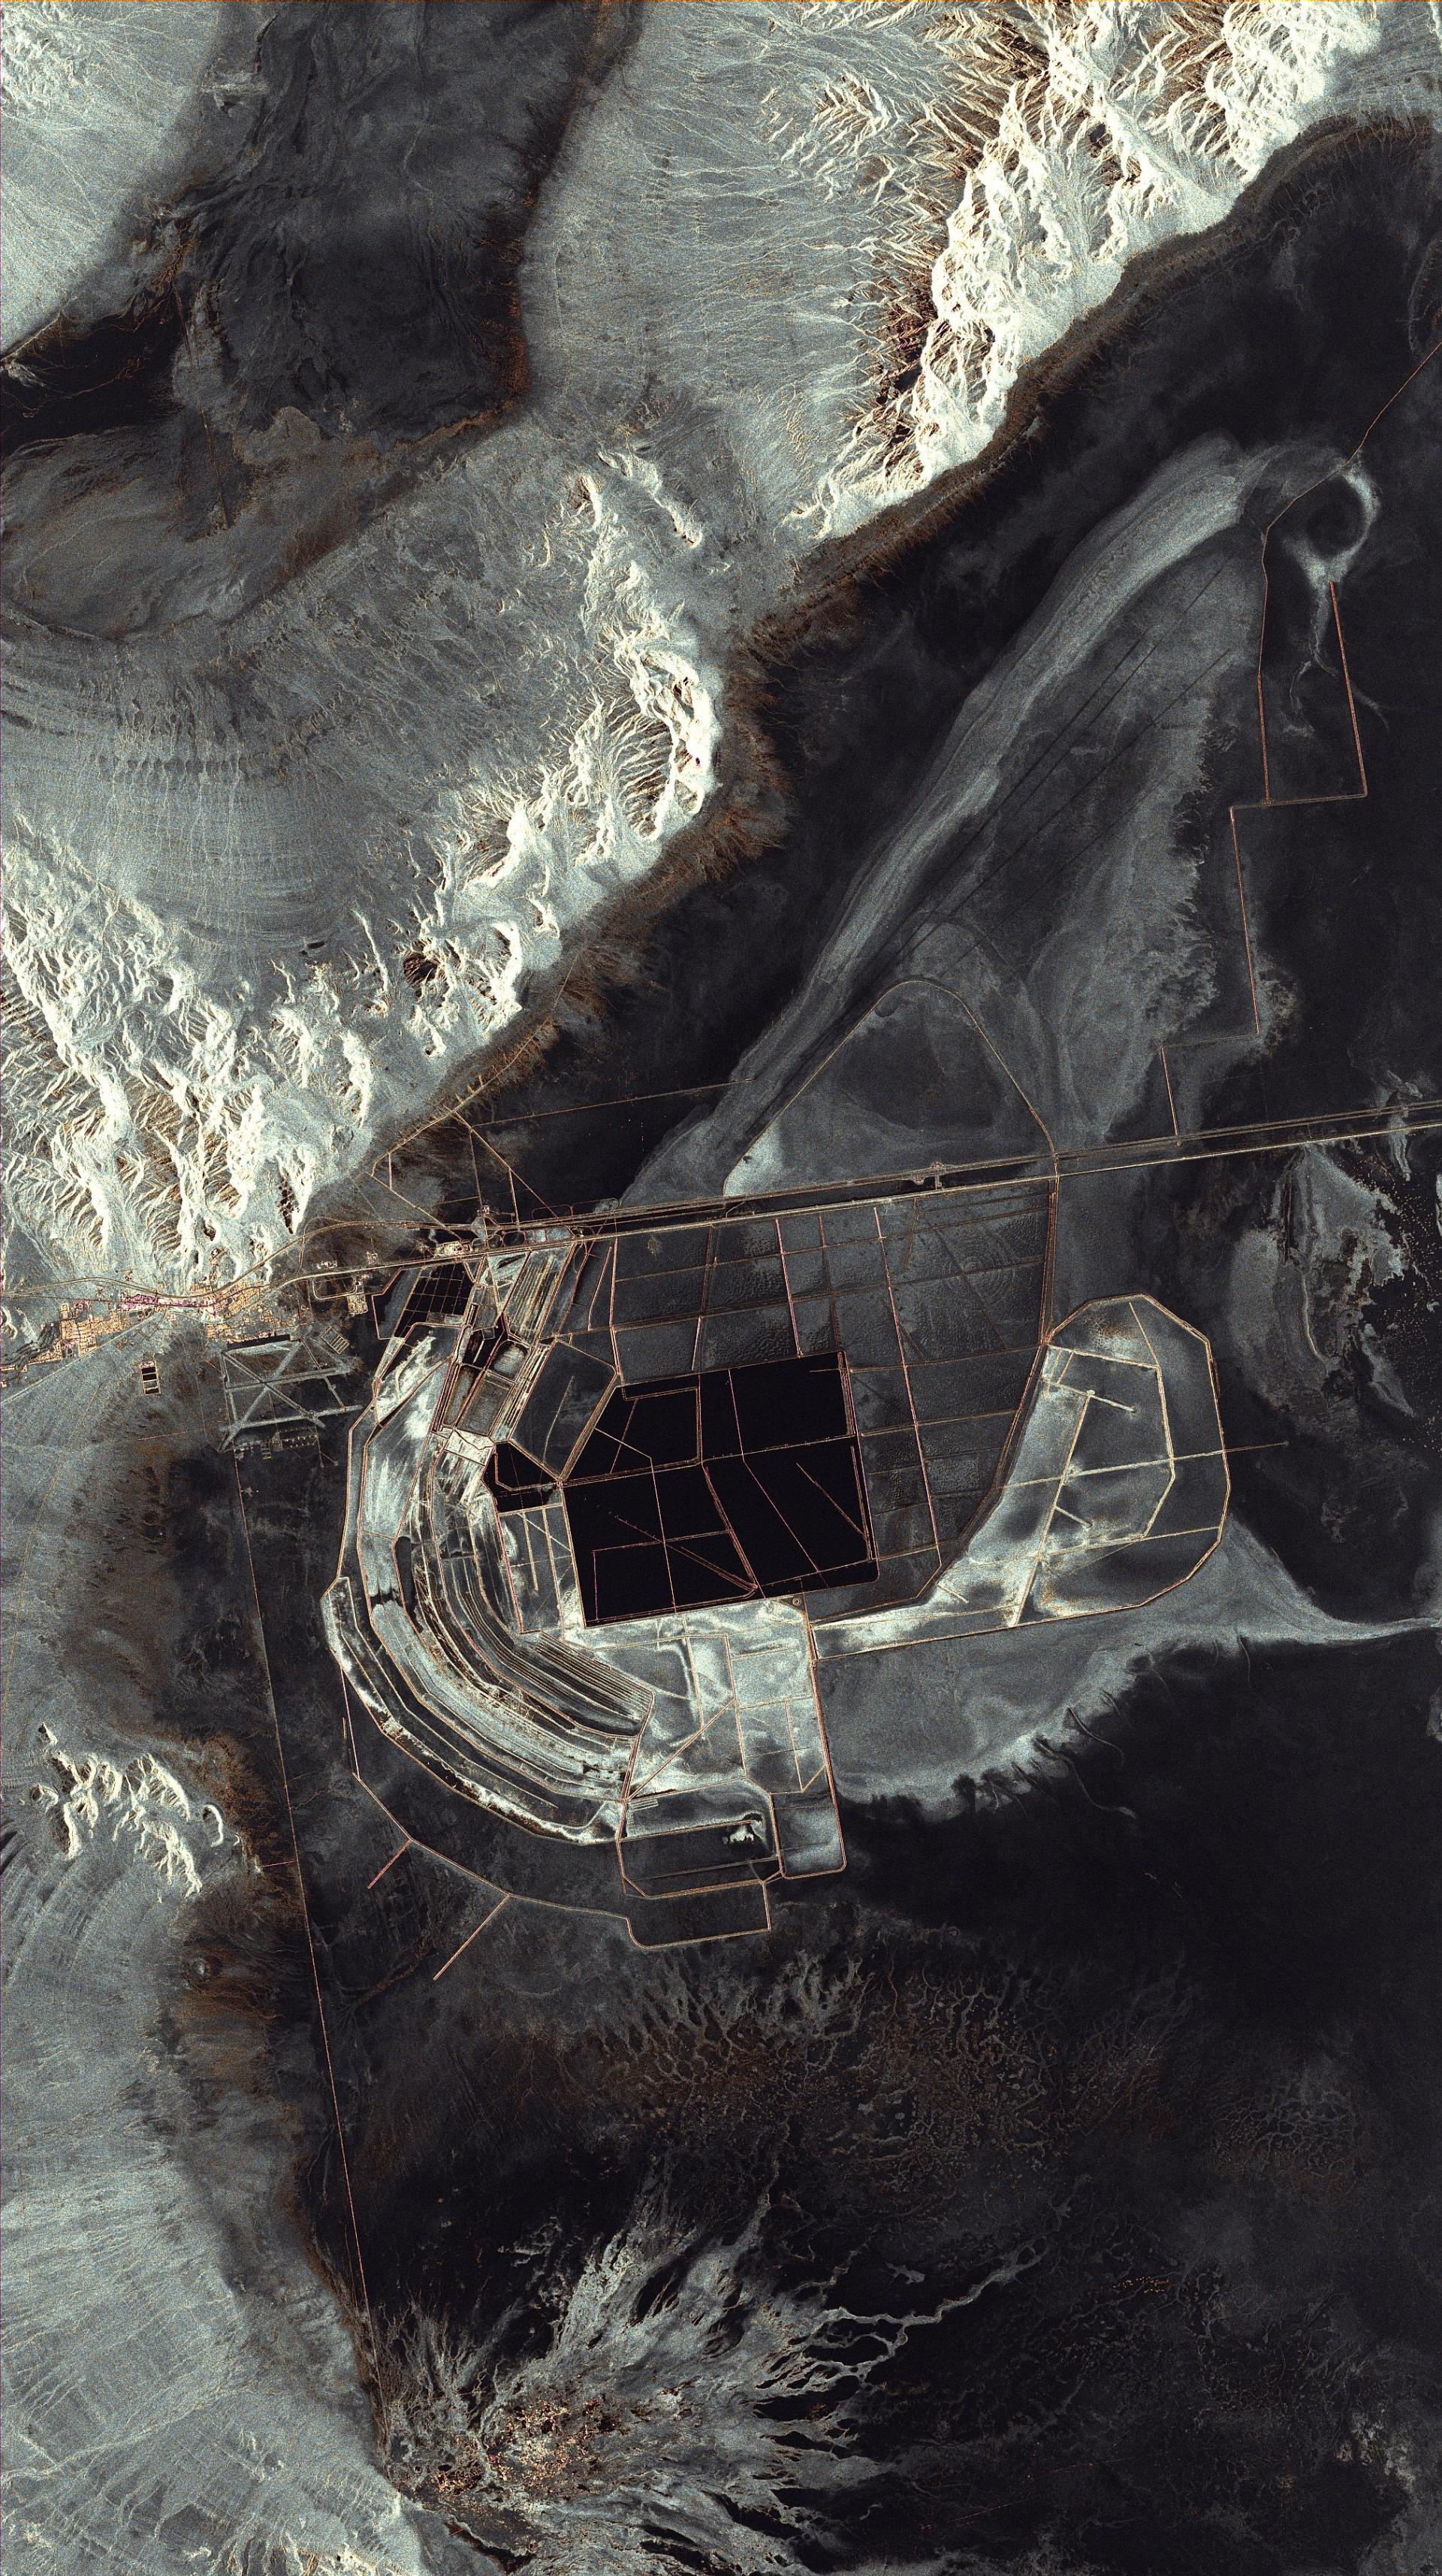 TerraSAR-X radar satellite image of salt flats